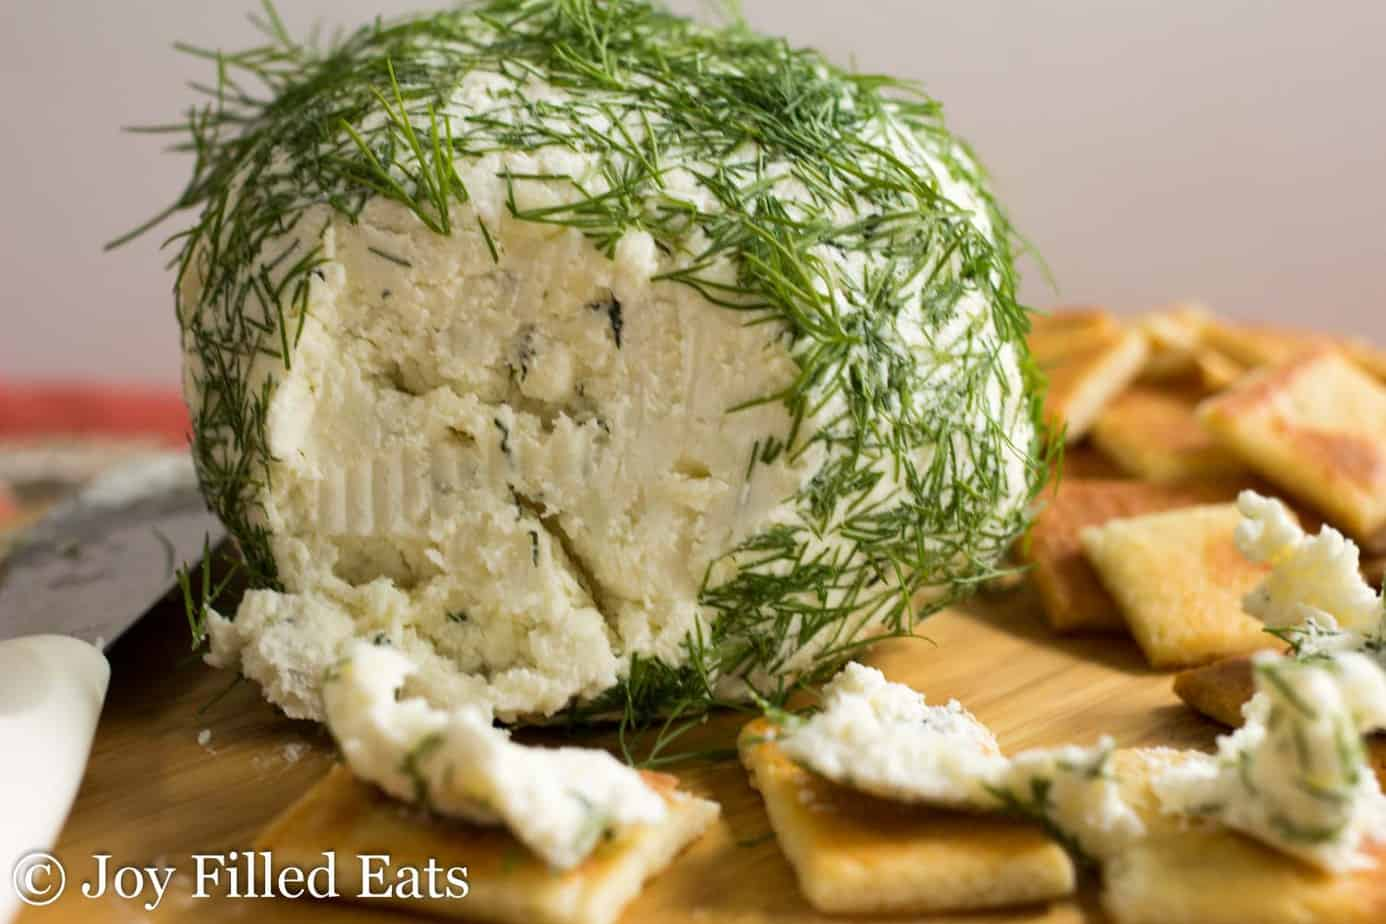 large ball of feta and dill cheese set on a cutting board surrounded by crackers with portion of cheese ball removed